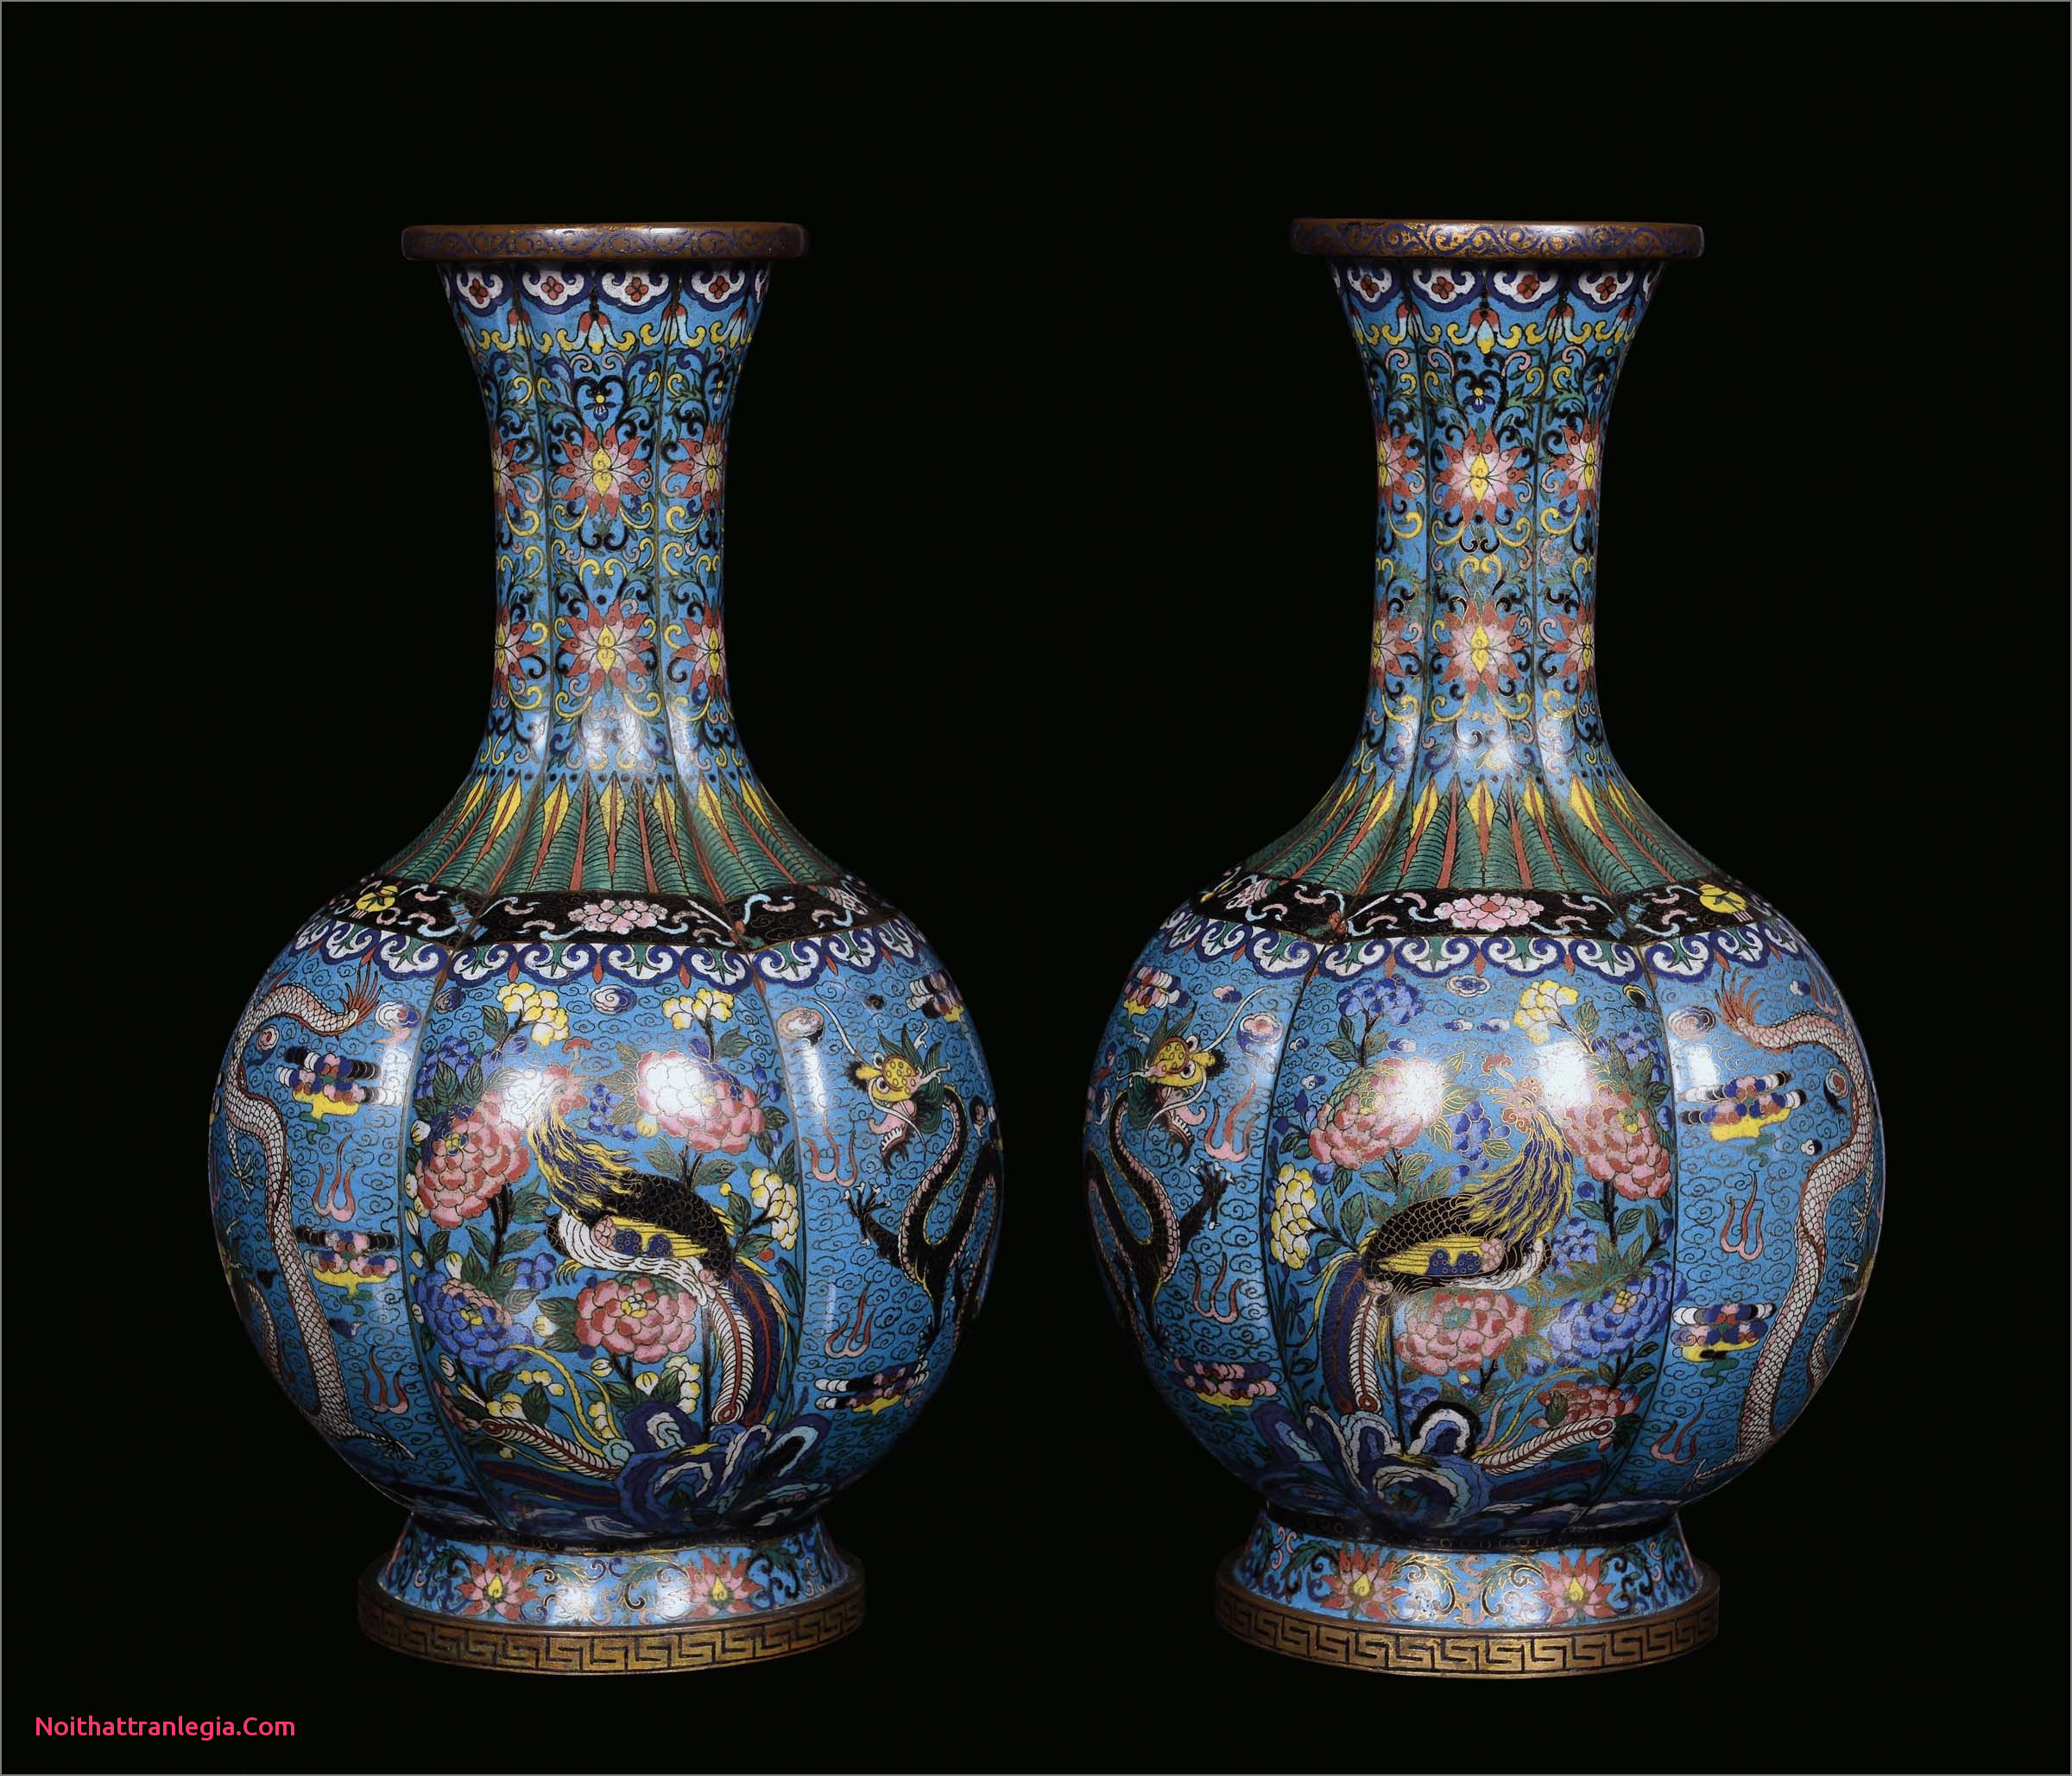 japanese bronze vase of 20 chinese antique vase noithattranlegia vases design throughout a pair of cloisonna vases with naturalistic decoration china qing dynasty guangxu period